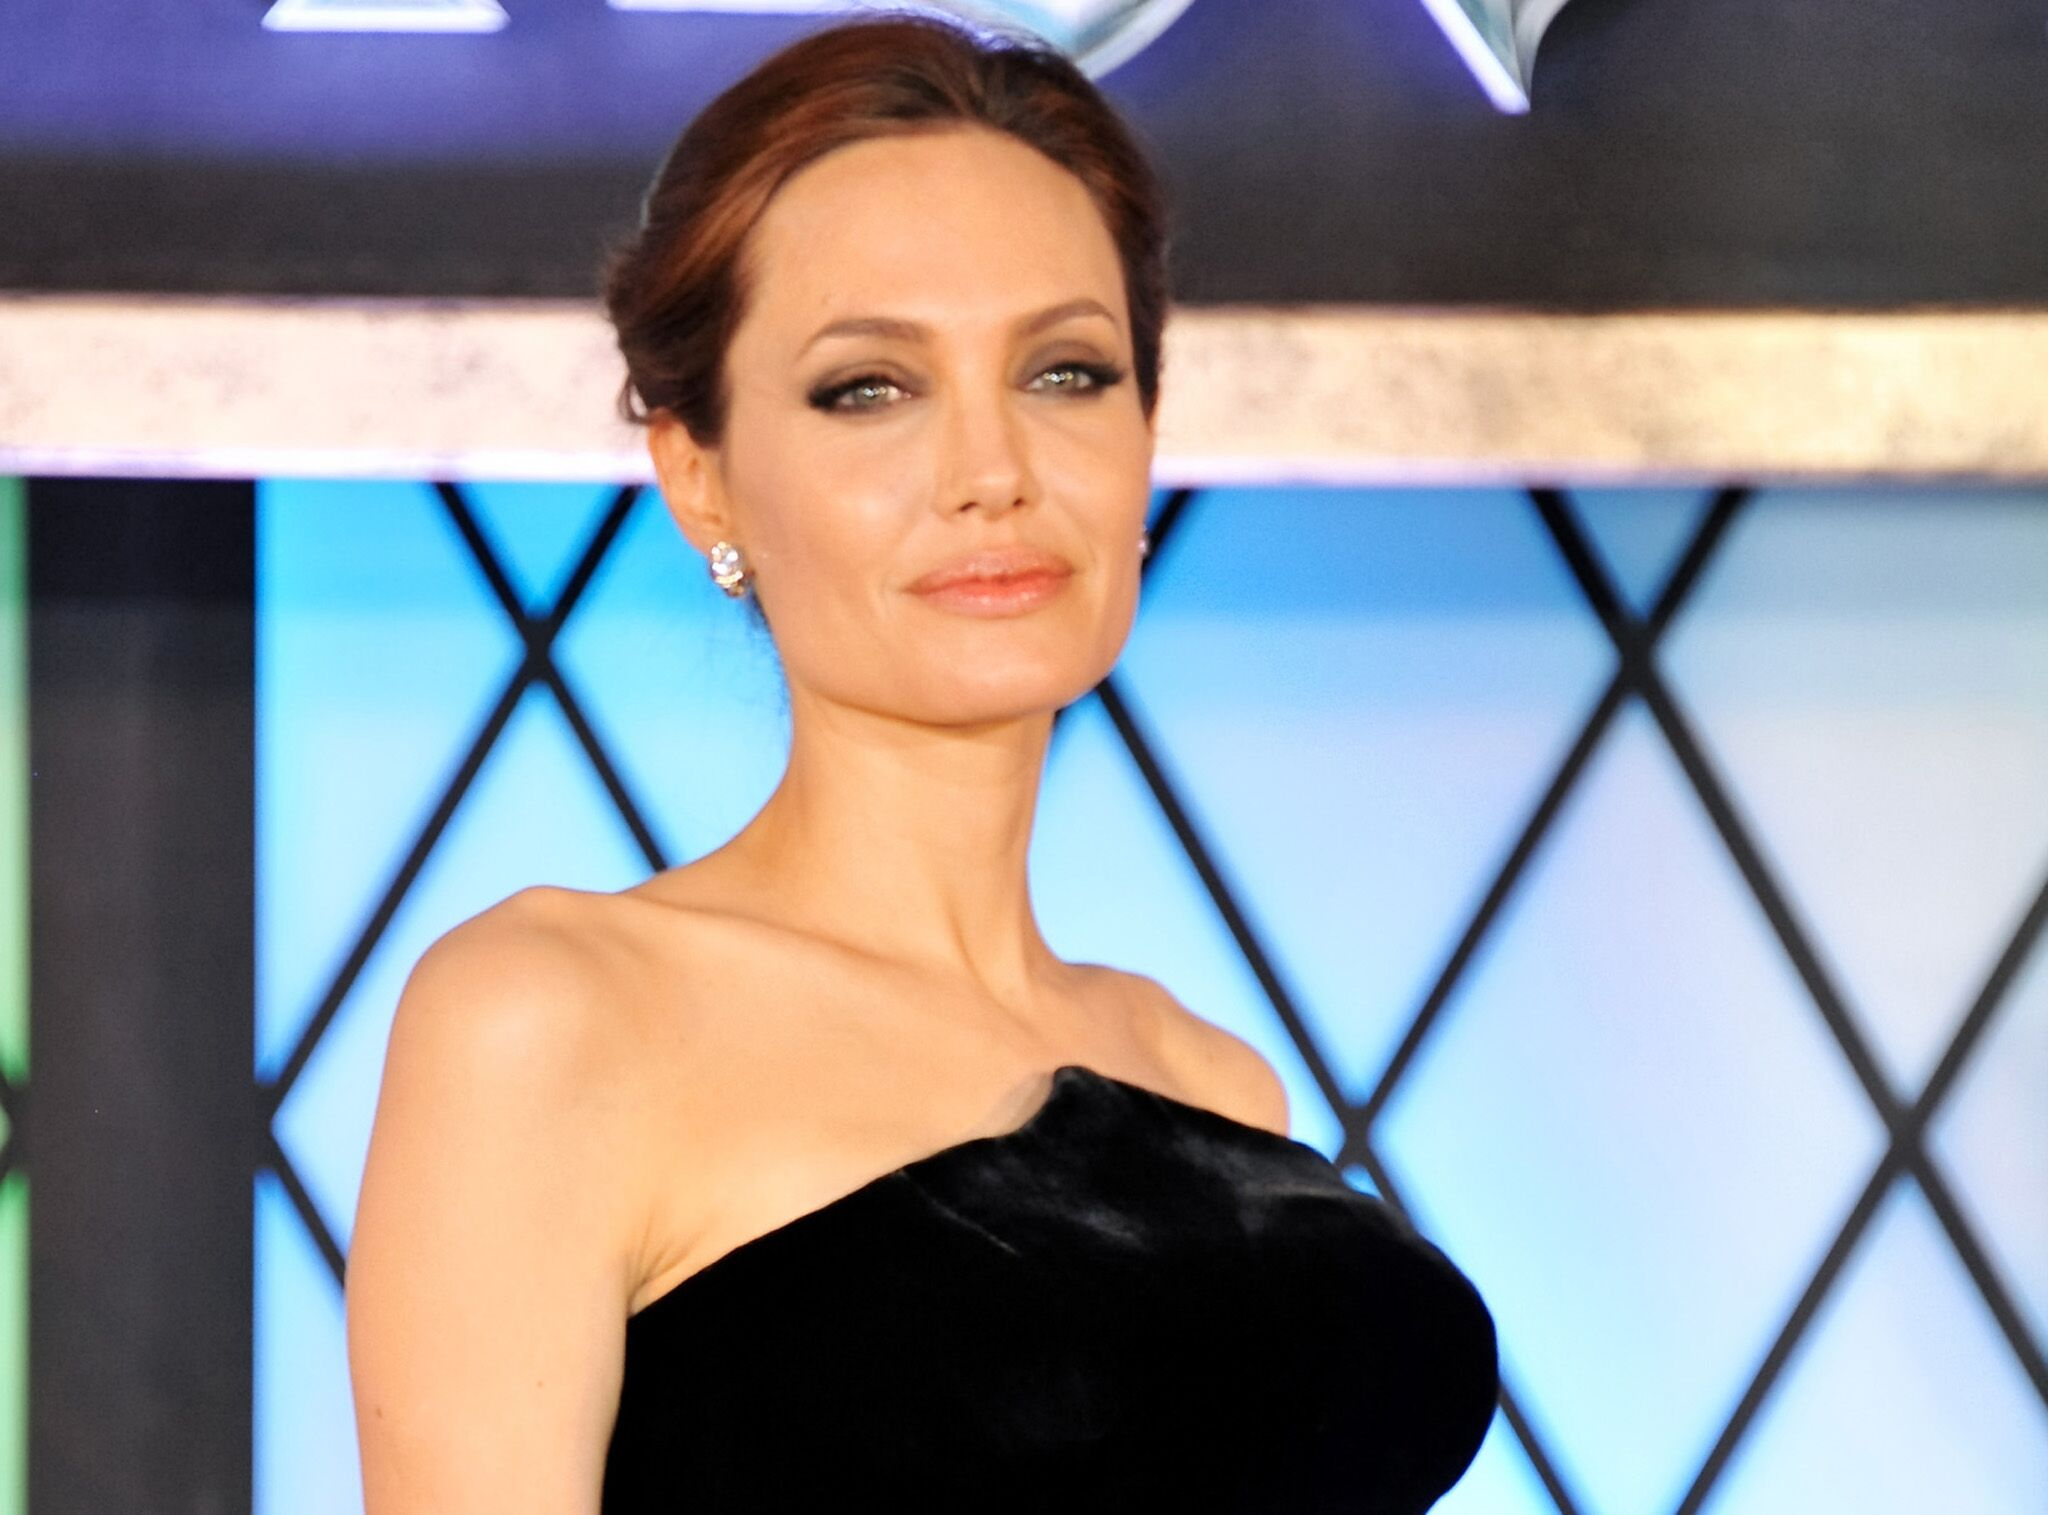 Angelina Jolie Nue Sex des photos d'angelina jolie topless à 19 ans refont surface